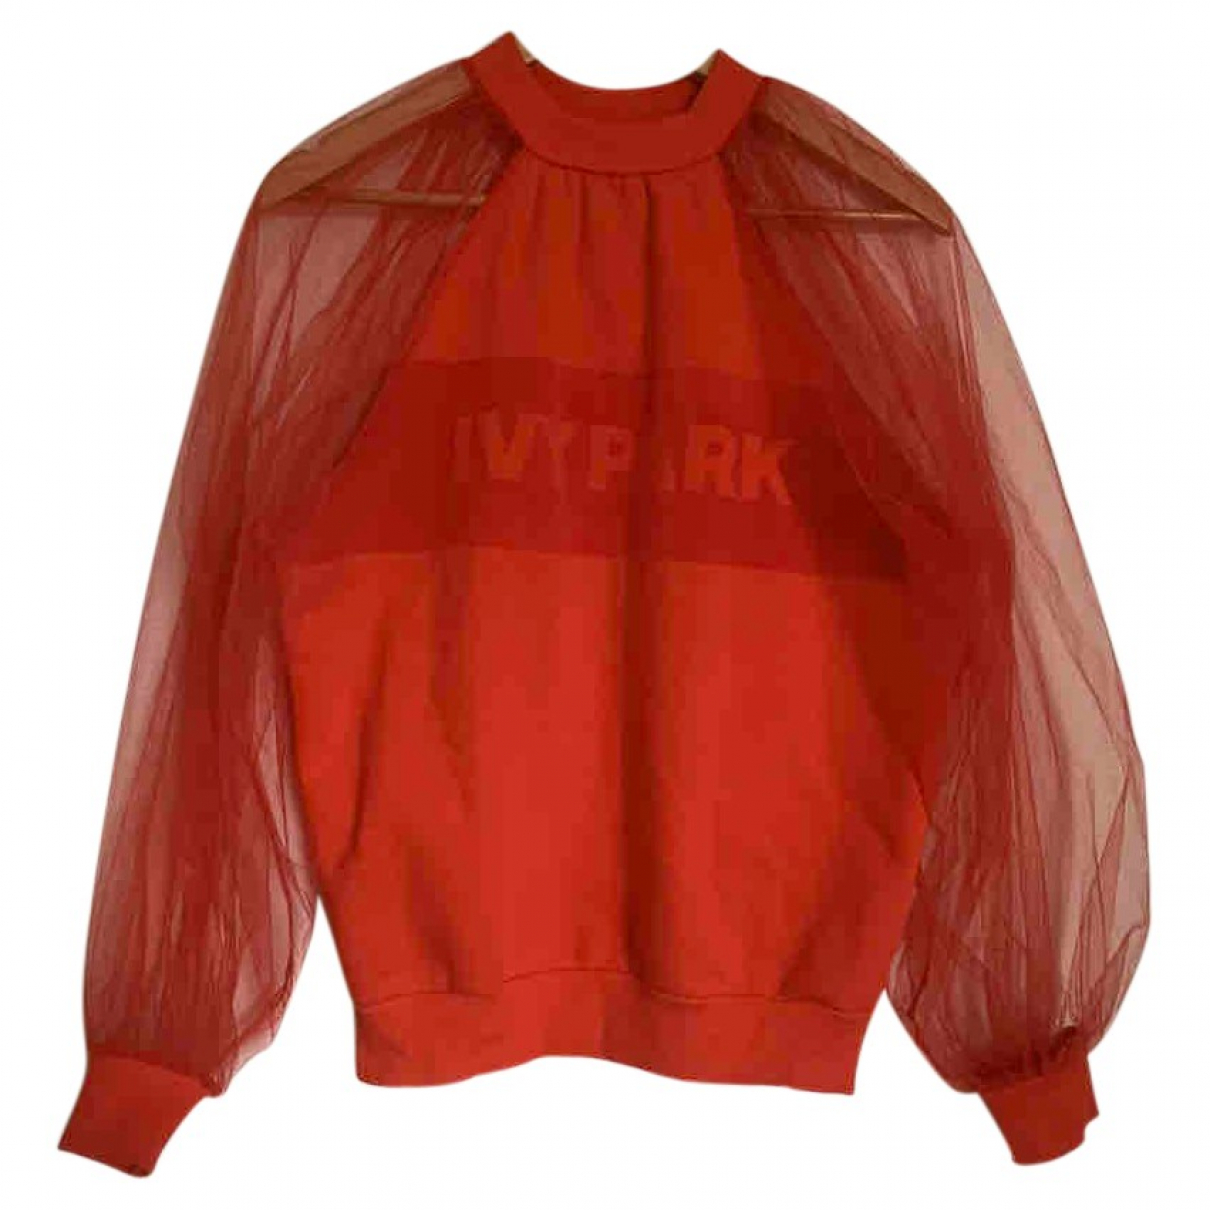 Ivy Park \N Red Cotton  top for Women XS International